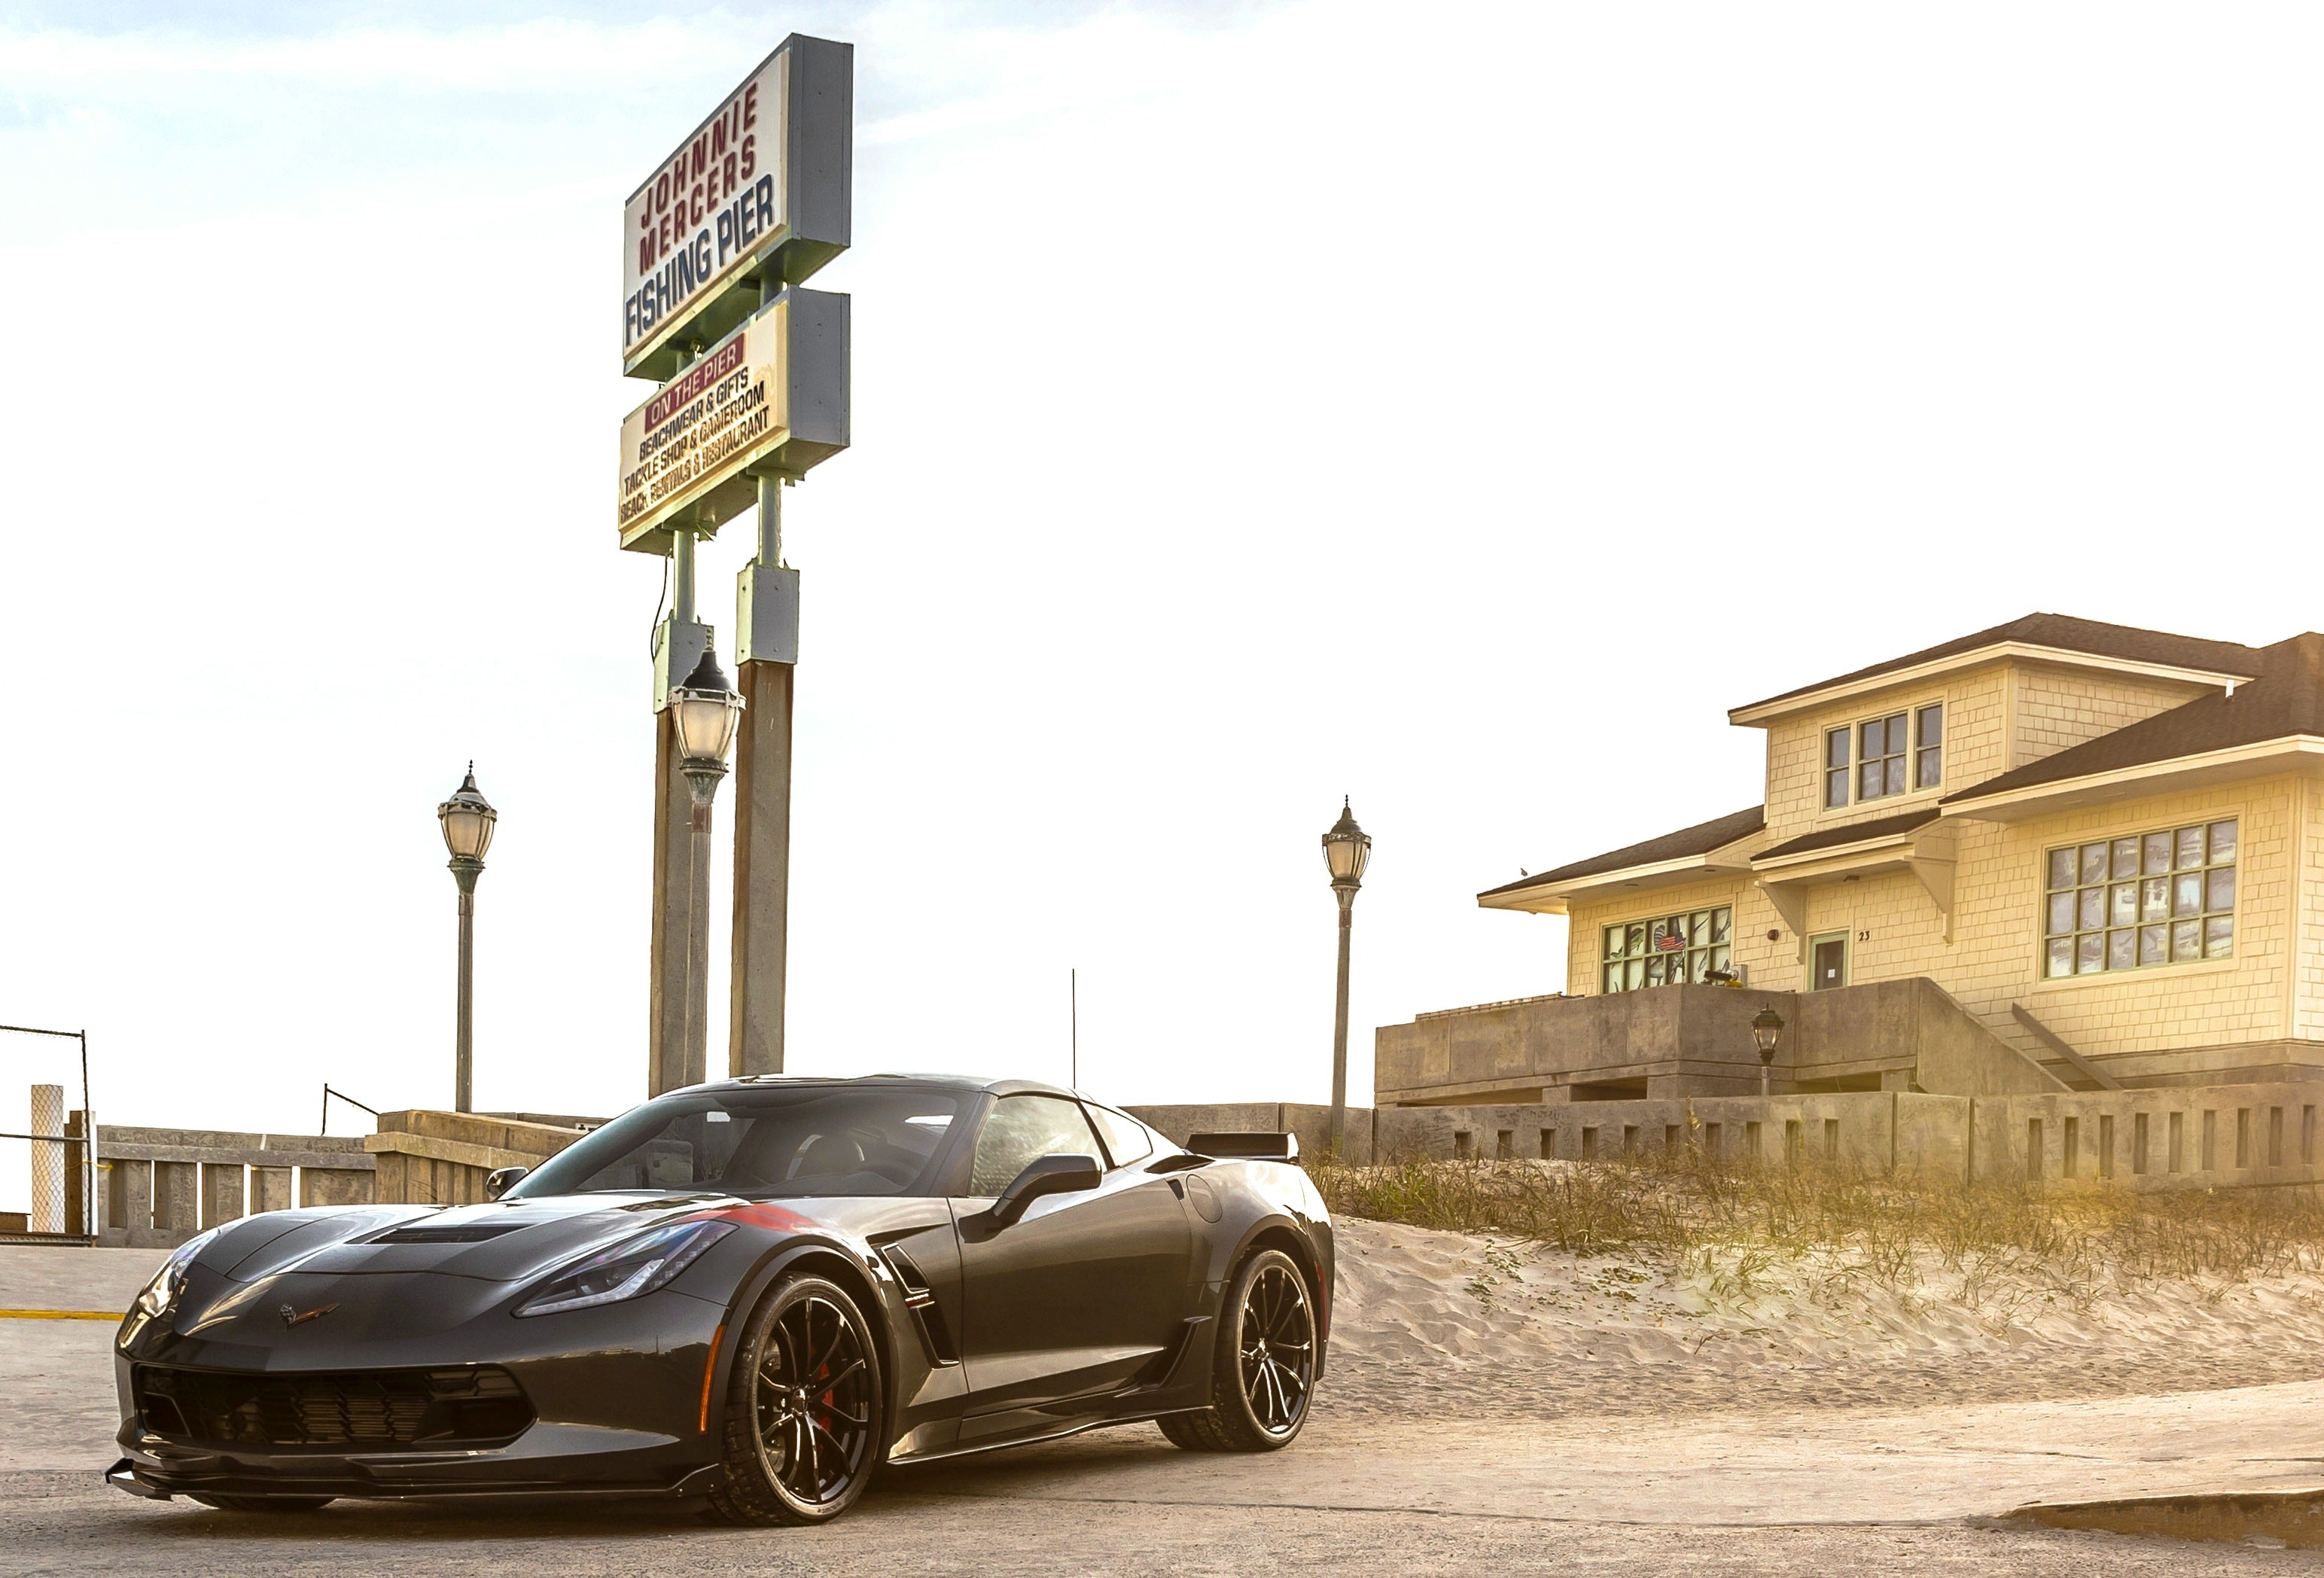 2019 Corvette For A Cure - You Could Win Jeff Gordon's Personal Corvette And Up $15,000 In Cash